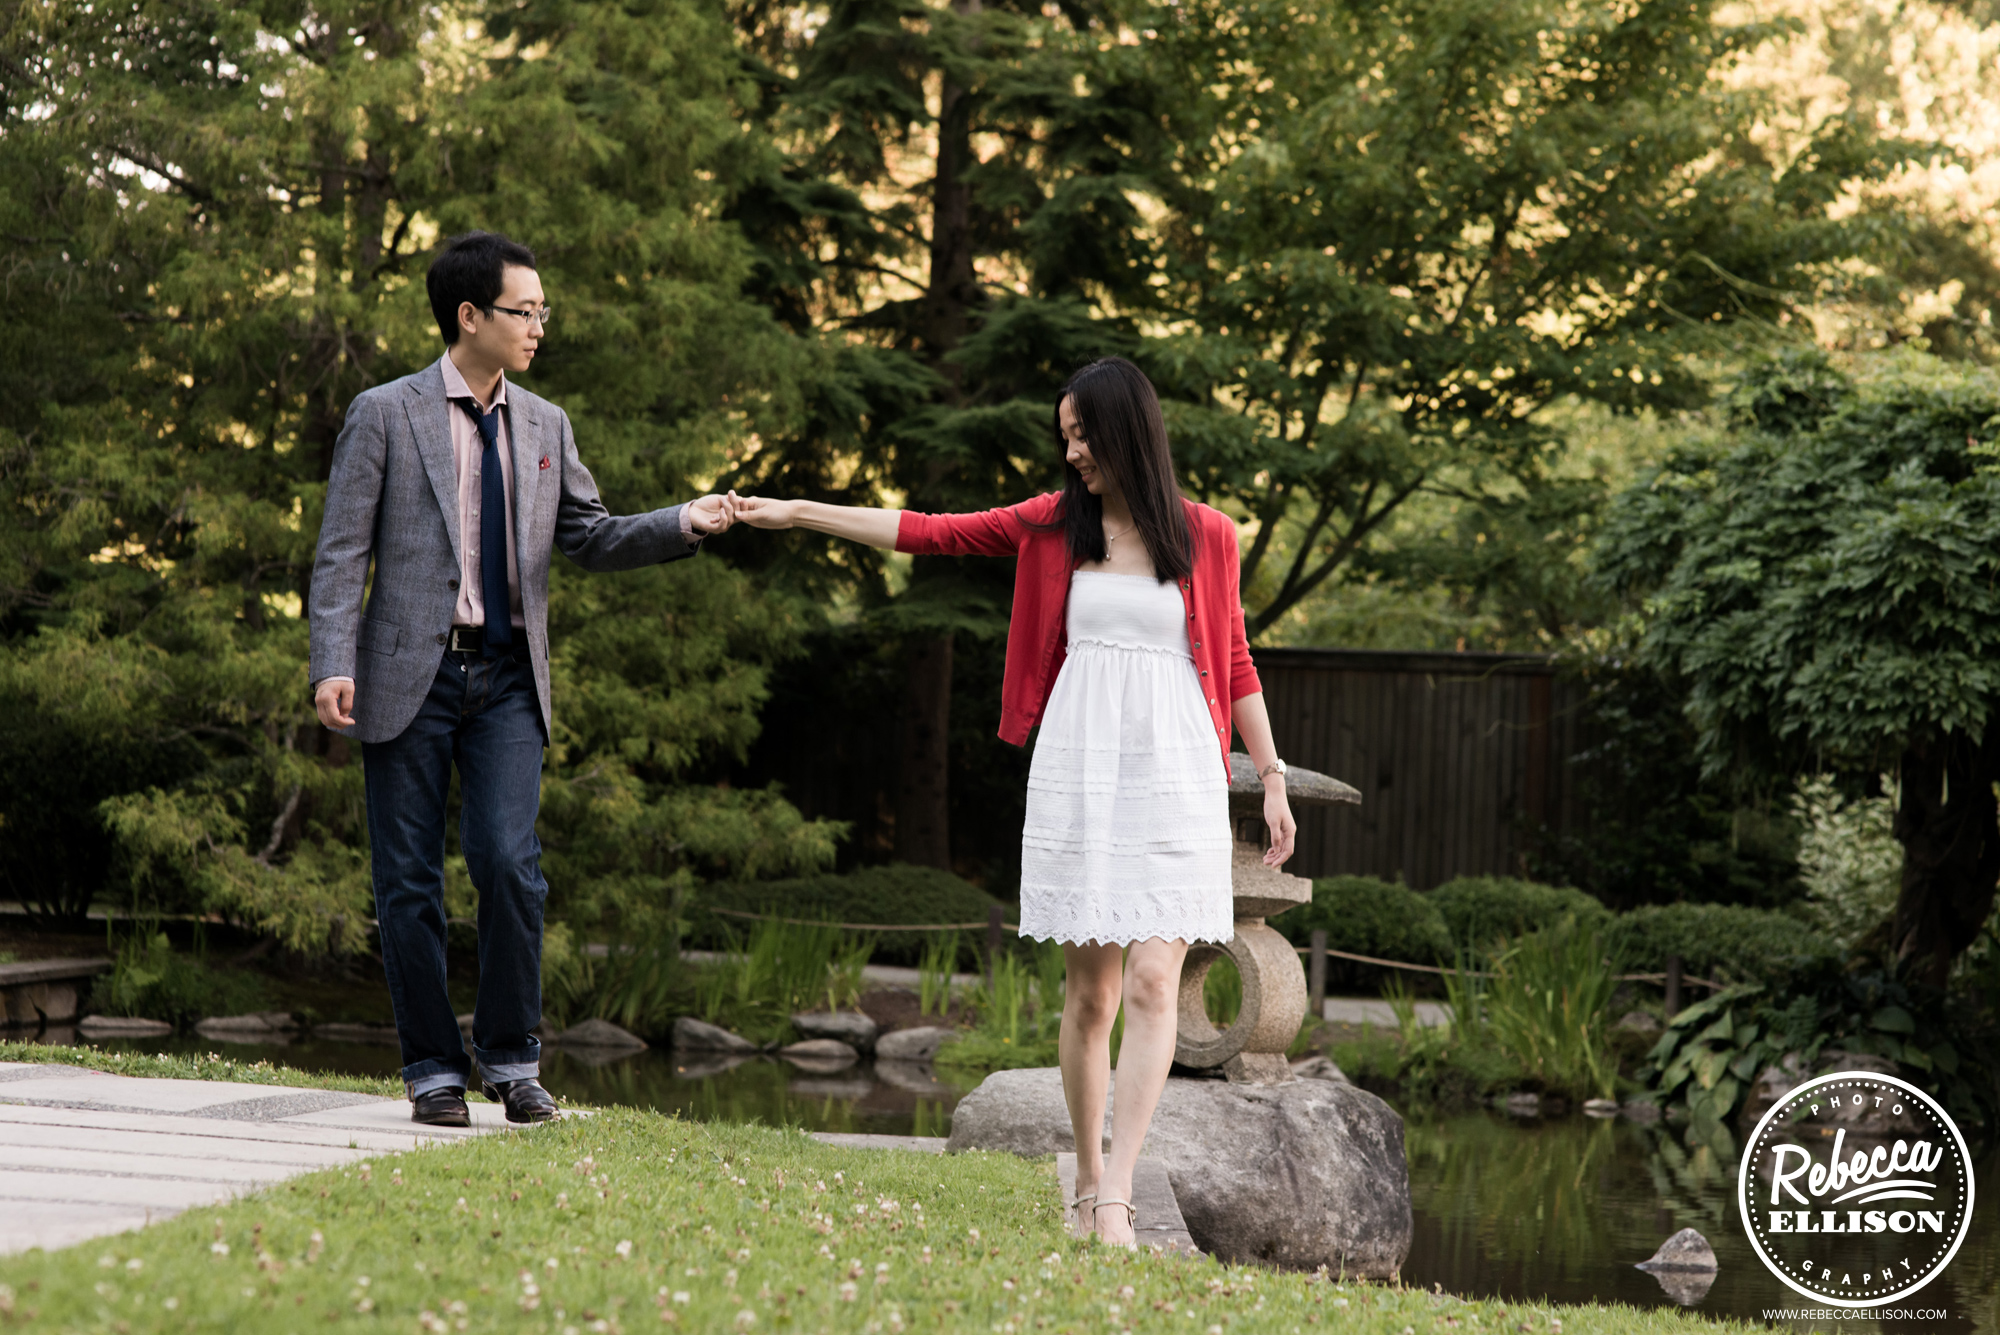 Engaged couple strolls through the Japanese Gardens at University of Washington during their outdoor engagement portraits photographed by University of Washington engagement photographer Rebecca Ellison